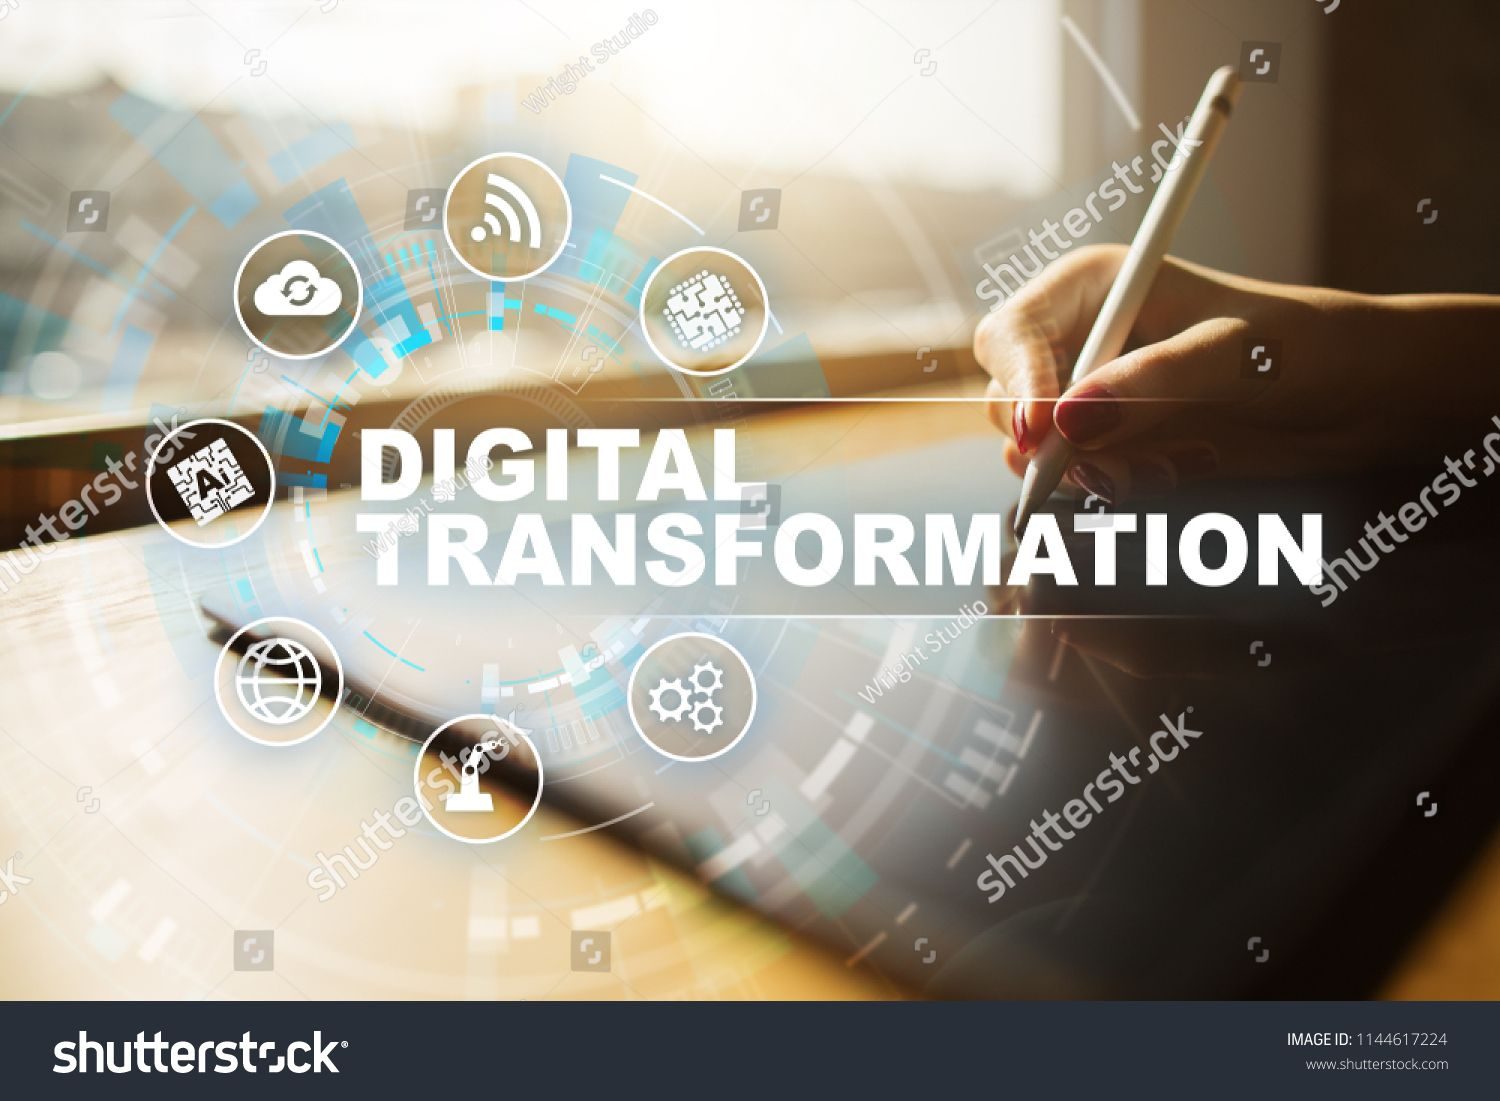 Digital Transformation Concept Of Digitization Of Business Processes And Modern Technology Ad Affiliate Digital Transformation Business Process Digital Digital transformation wallpaper hd